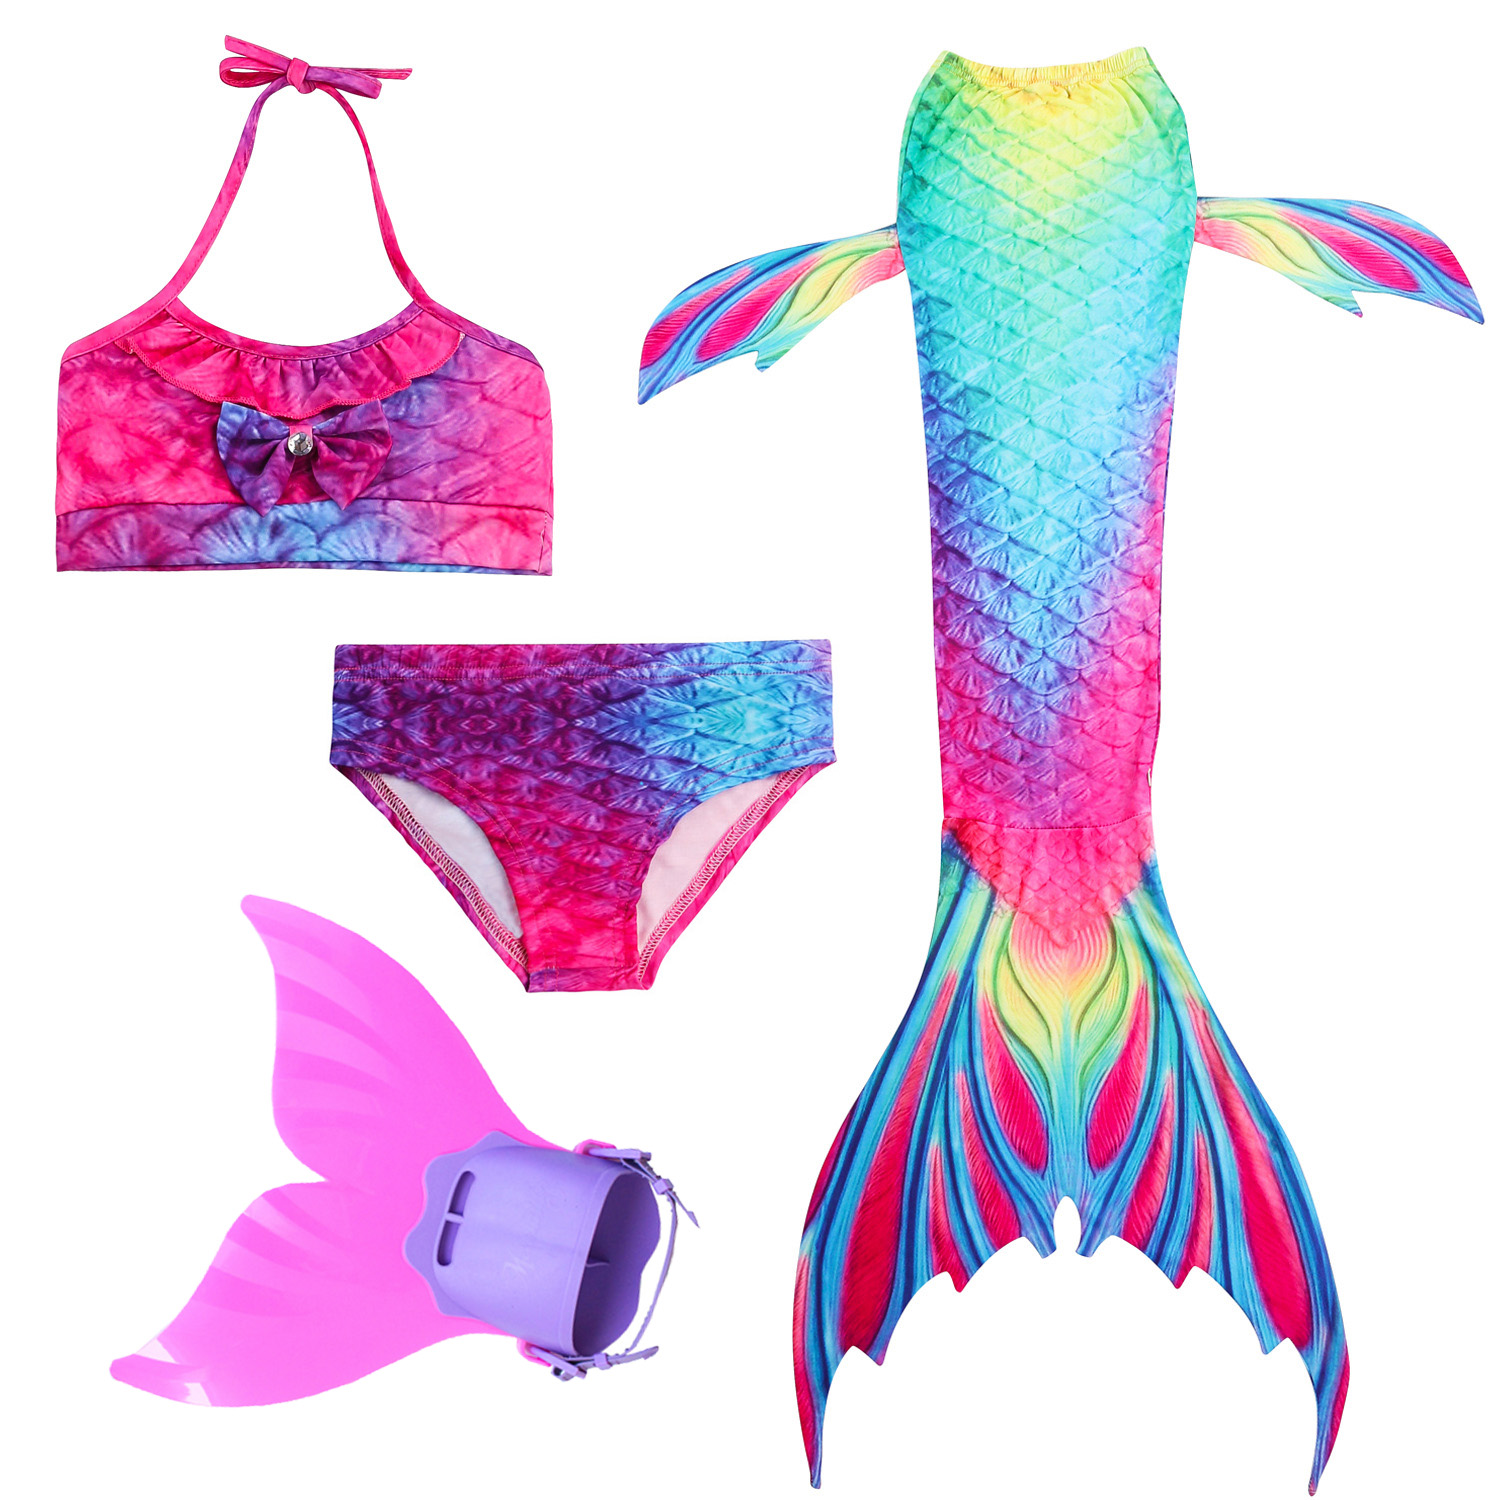 2019 HOT 4PCS/Set Girls Swimming Mermaid Tails With Fin Cosplay Swimwear Bikini Bathing Suit Dress For Girls Kid Summer Swimsuit